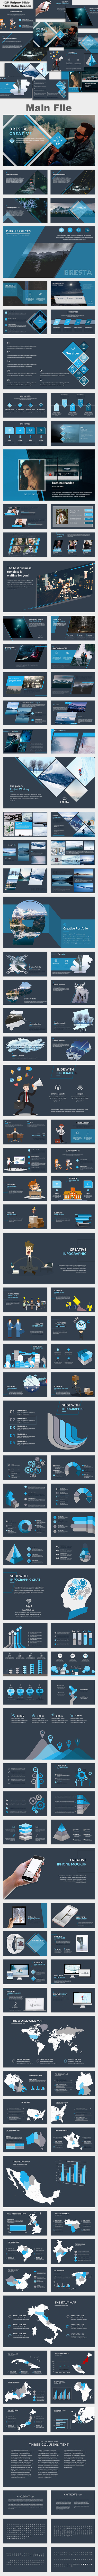 Bresta Creative PowerPoint Template - Creative PowerPoint Templates